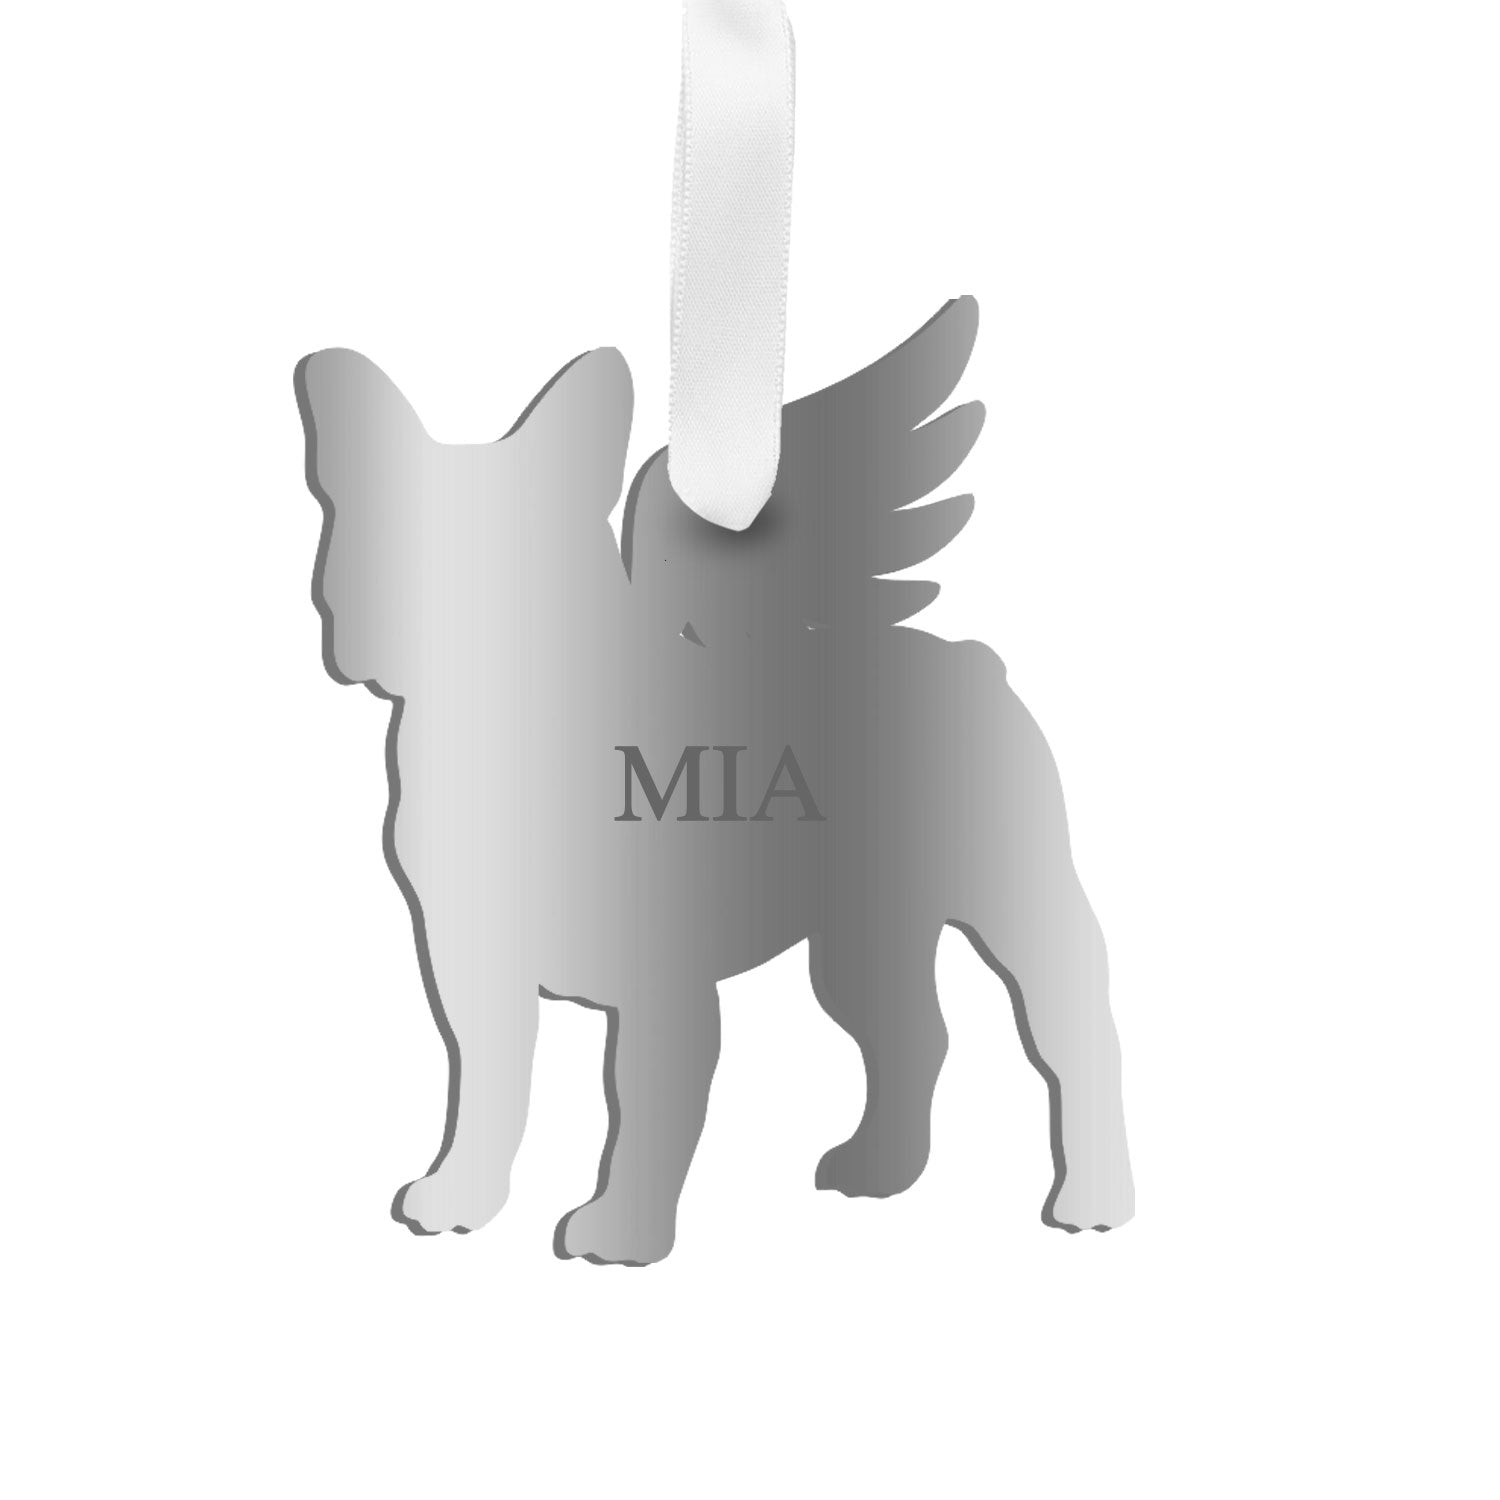 Moon and Lola - Personalized Angel Boston Terrier Ornament with wings in mirrored silver